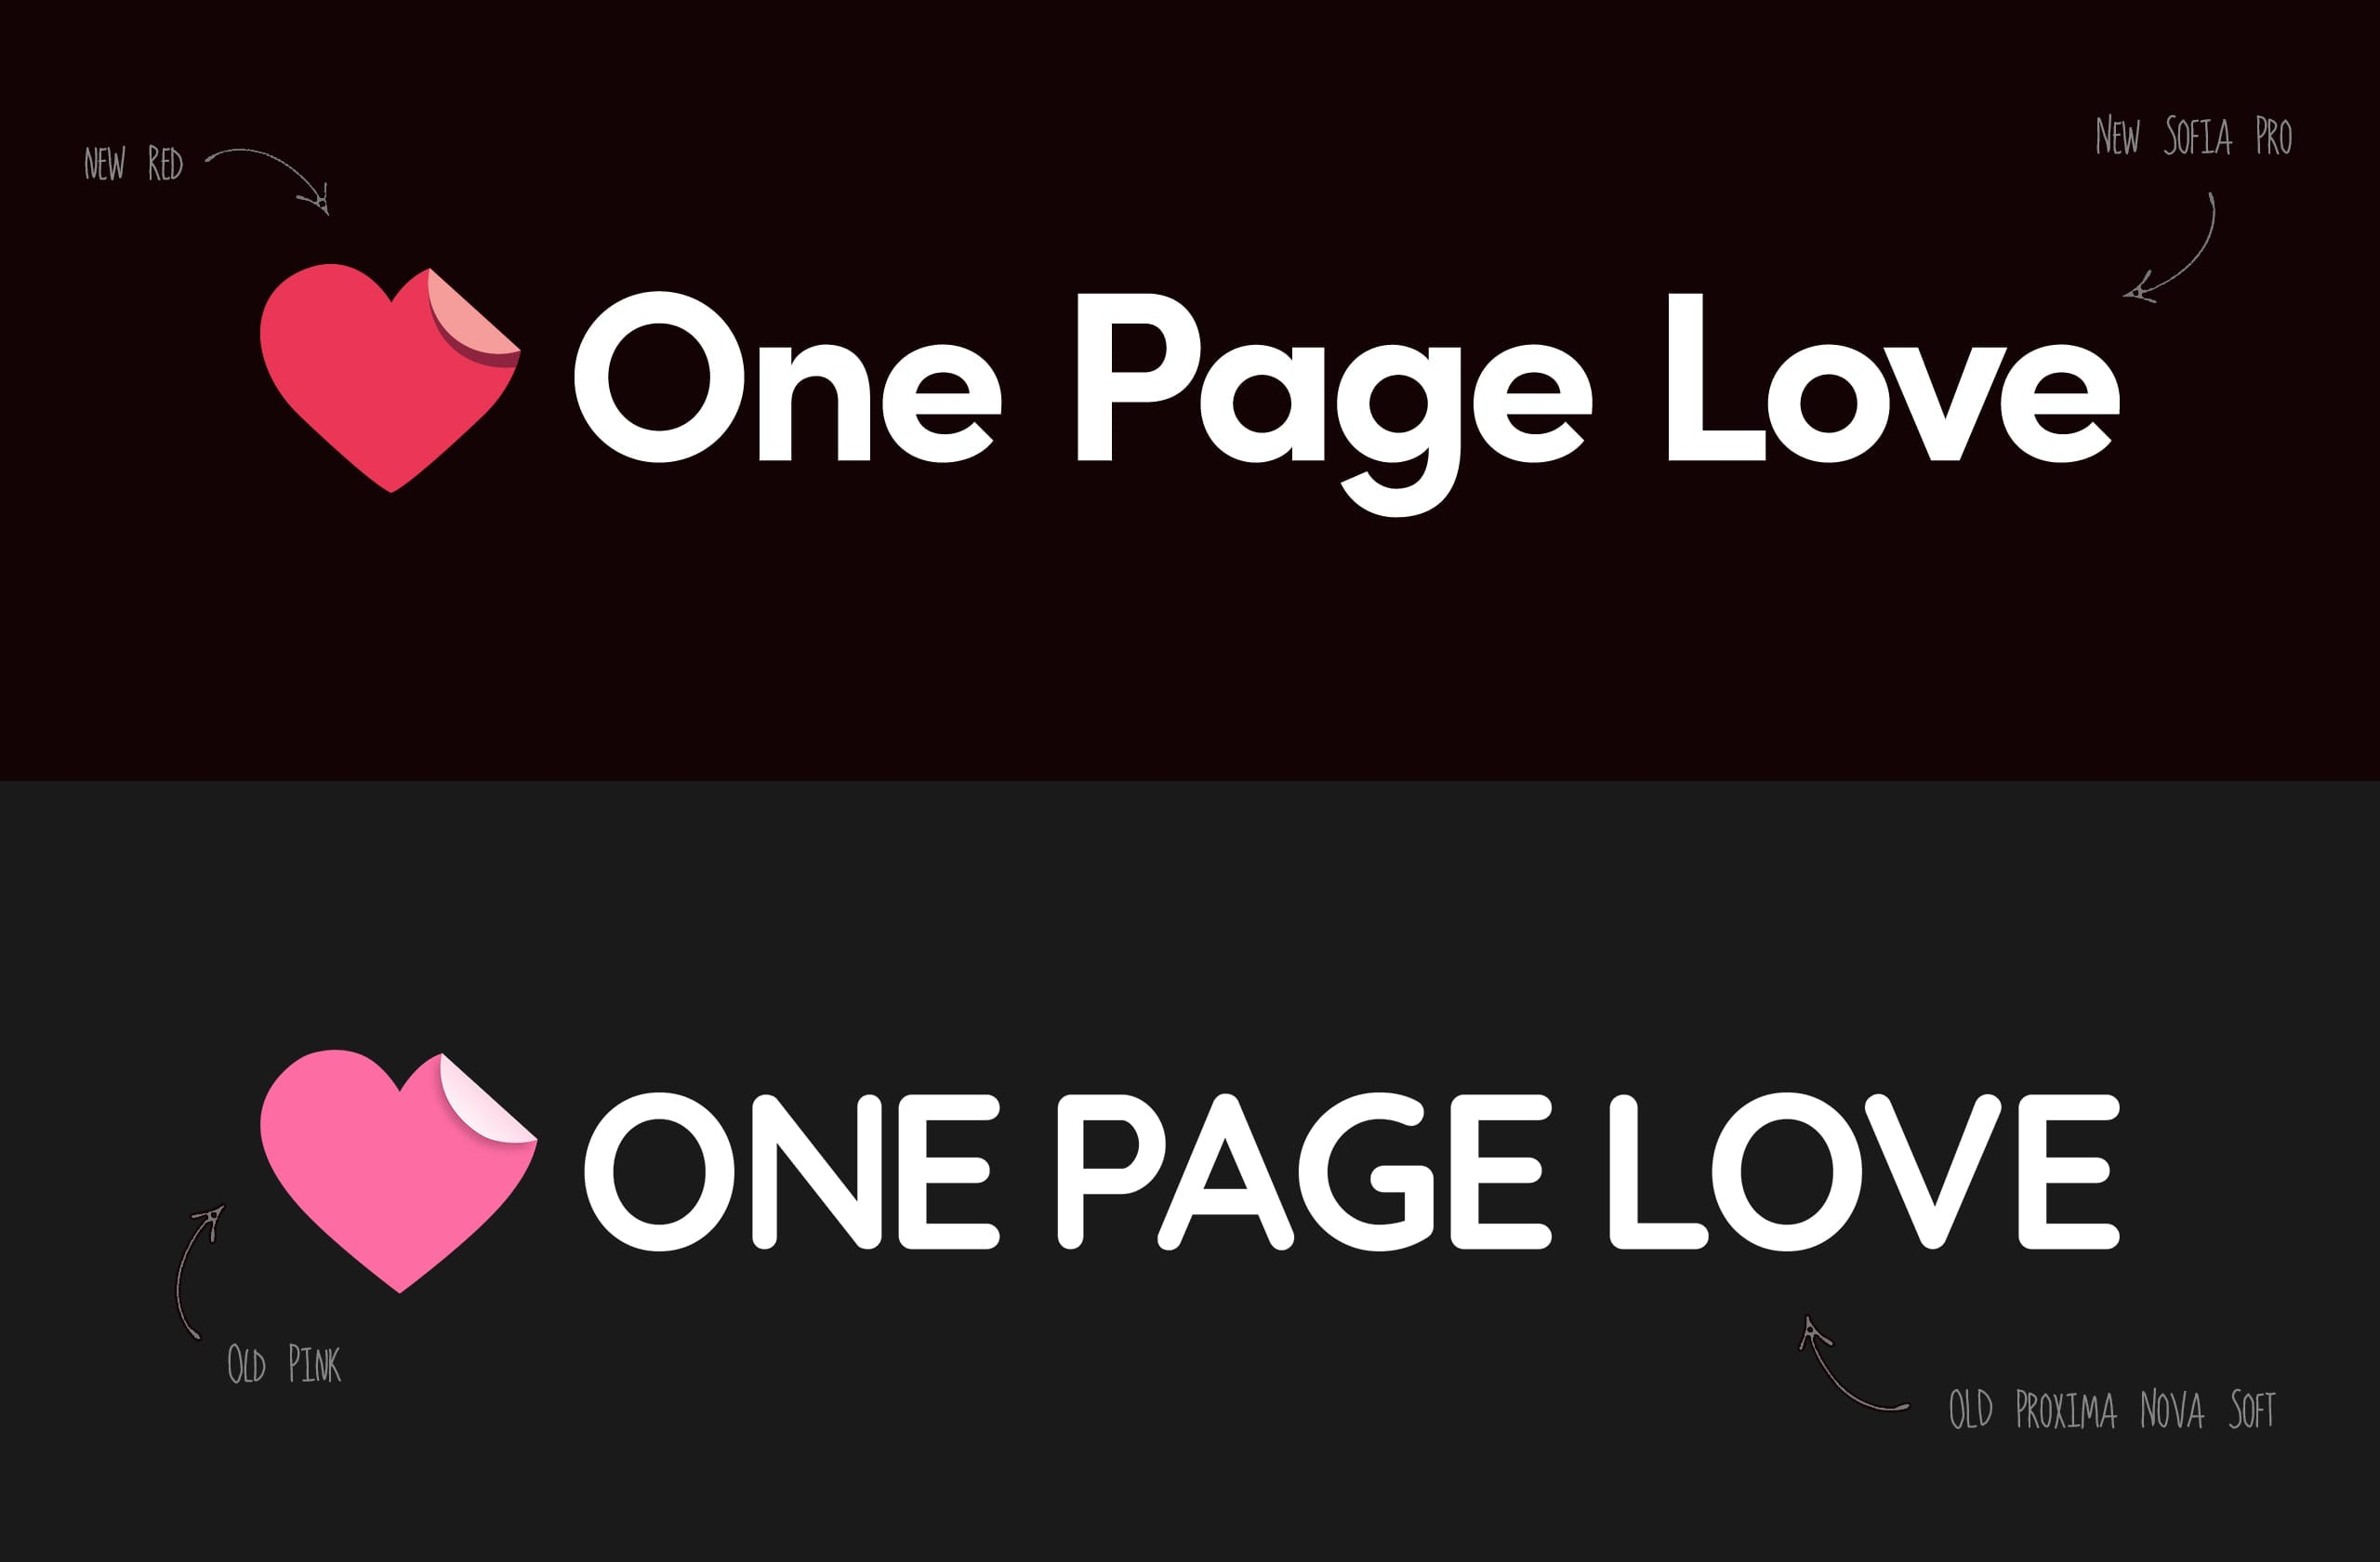 New One Page Love logo